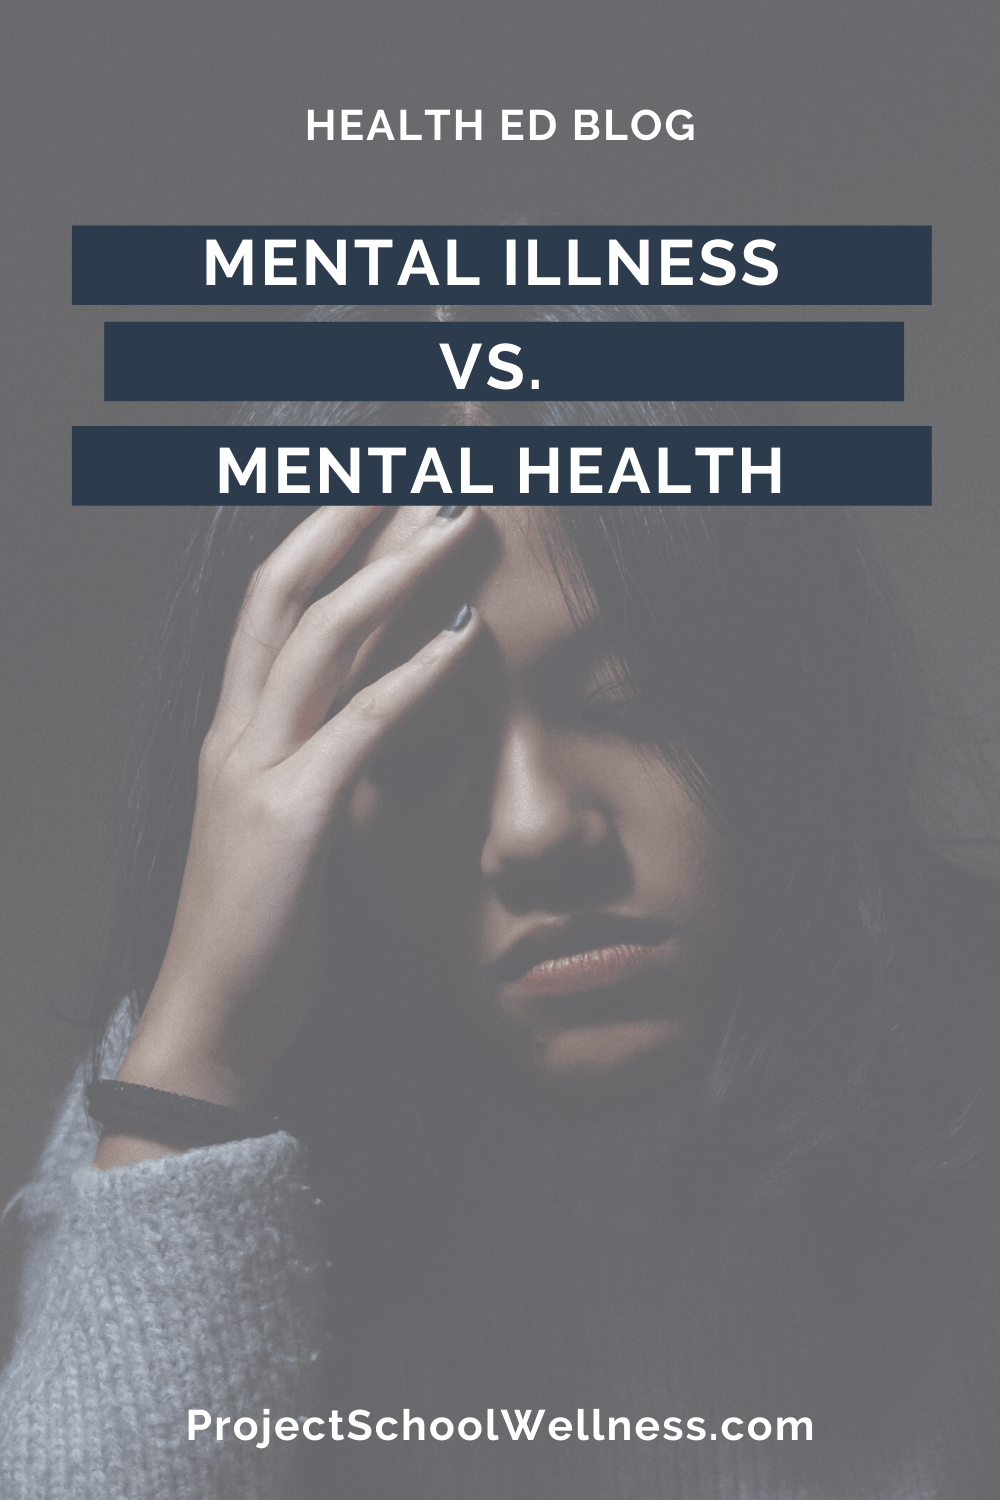 Health Education Blog - Understanding the difference between Mental Illness and Mental Health - Tips for boosting students' Mental Health - Project School Wellness